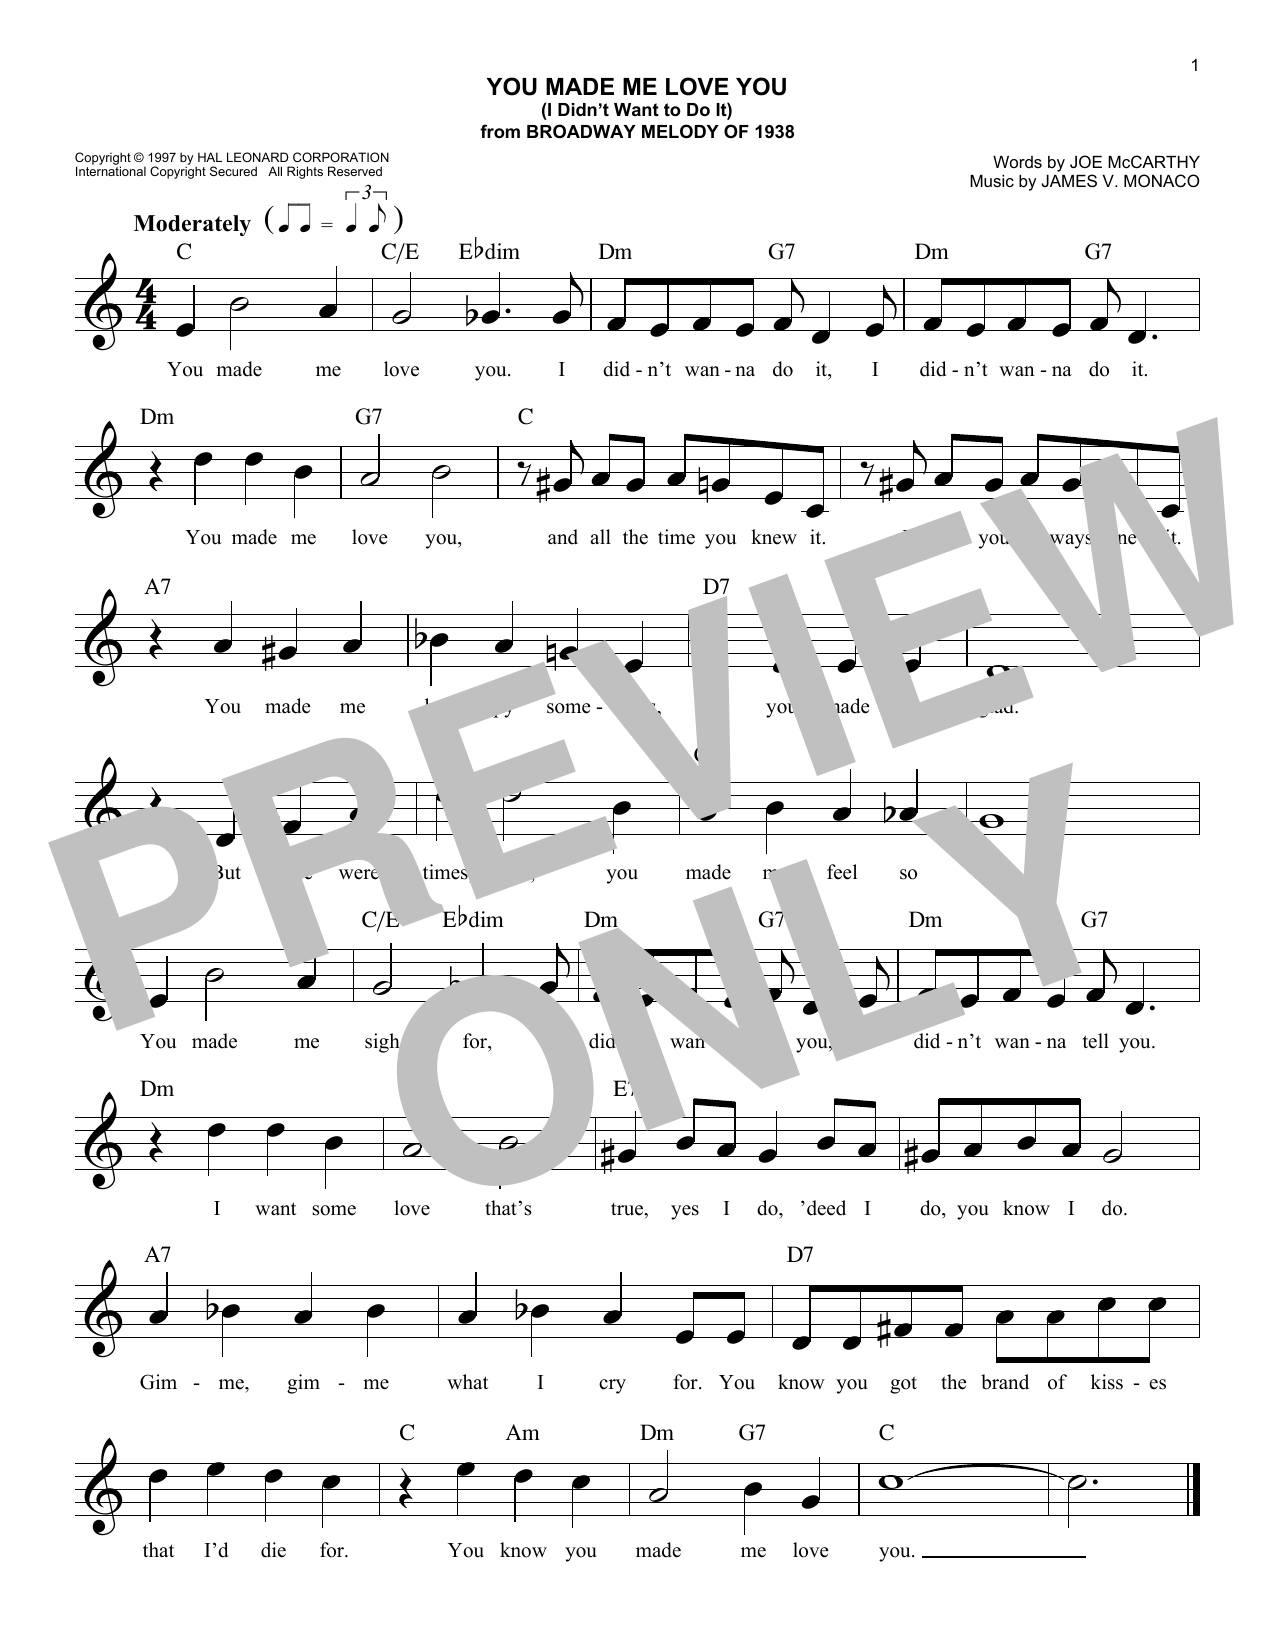 Joe McCarthy You Made Me Love You (I Didn't Want To Do It) sheet music notes and chords. Download Printable PDF.